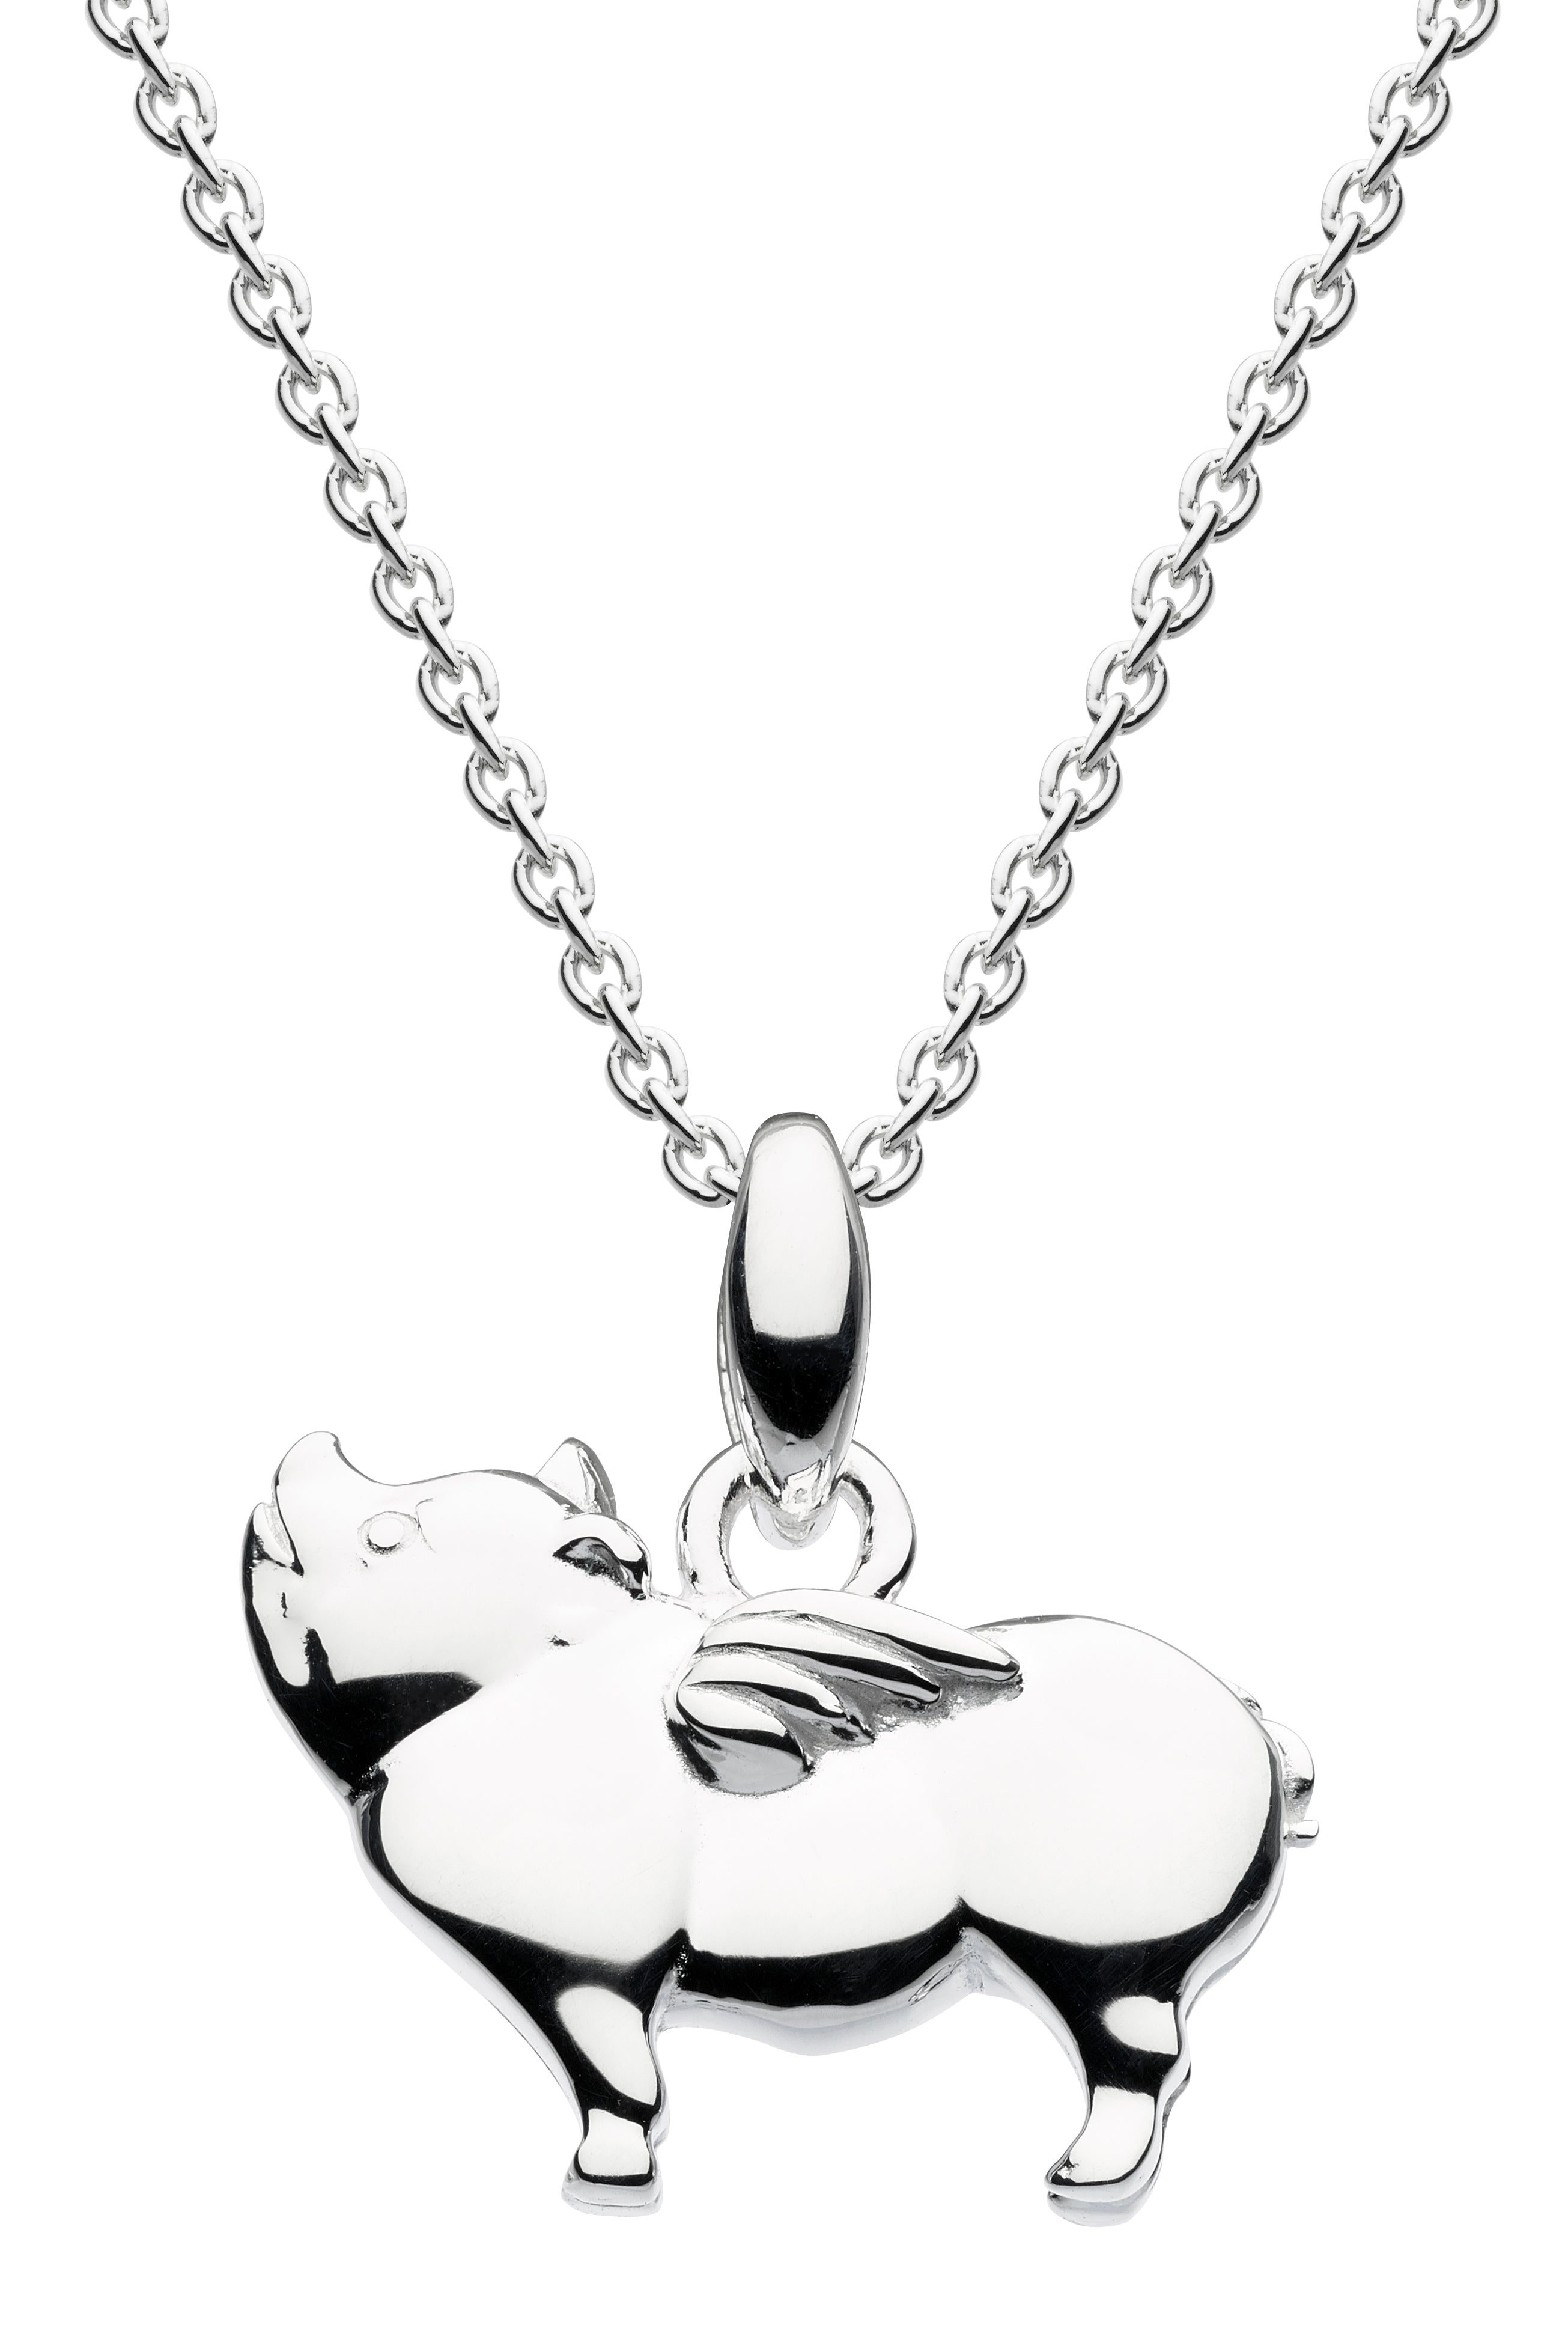 3D flying pig pendant and chain